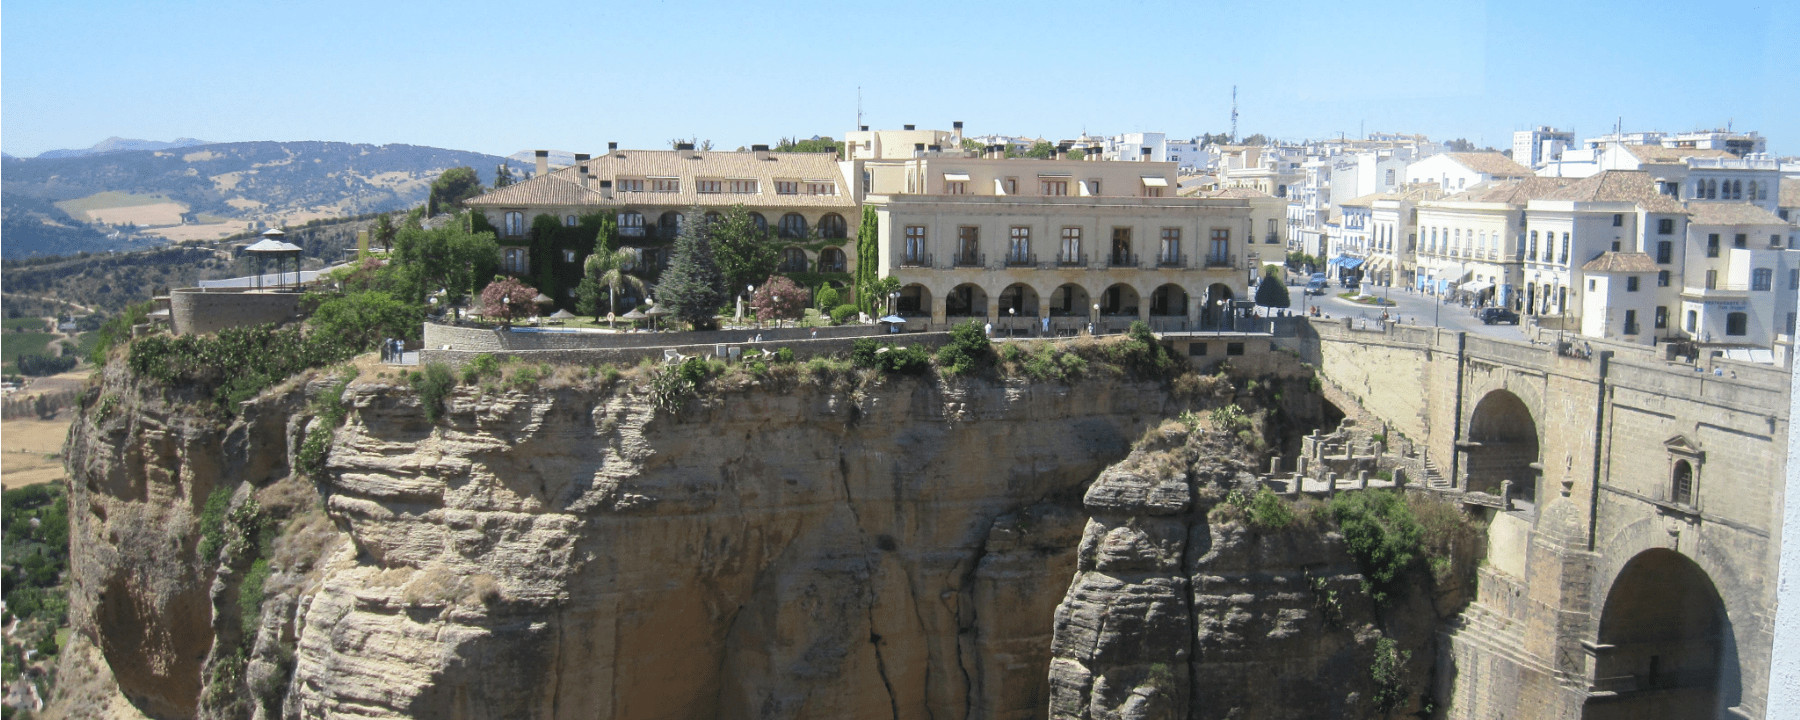 24 Hours In Ronda With Kids